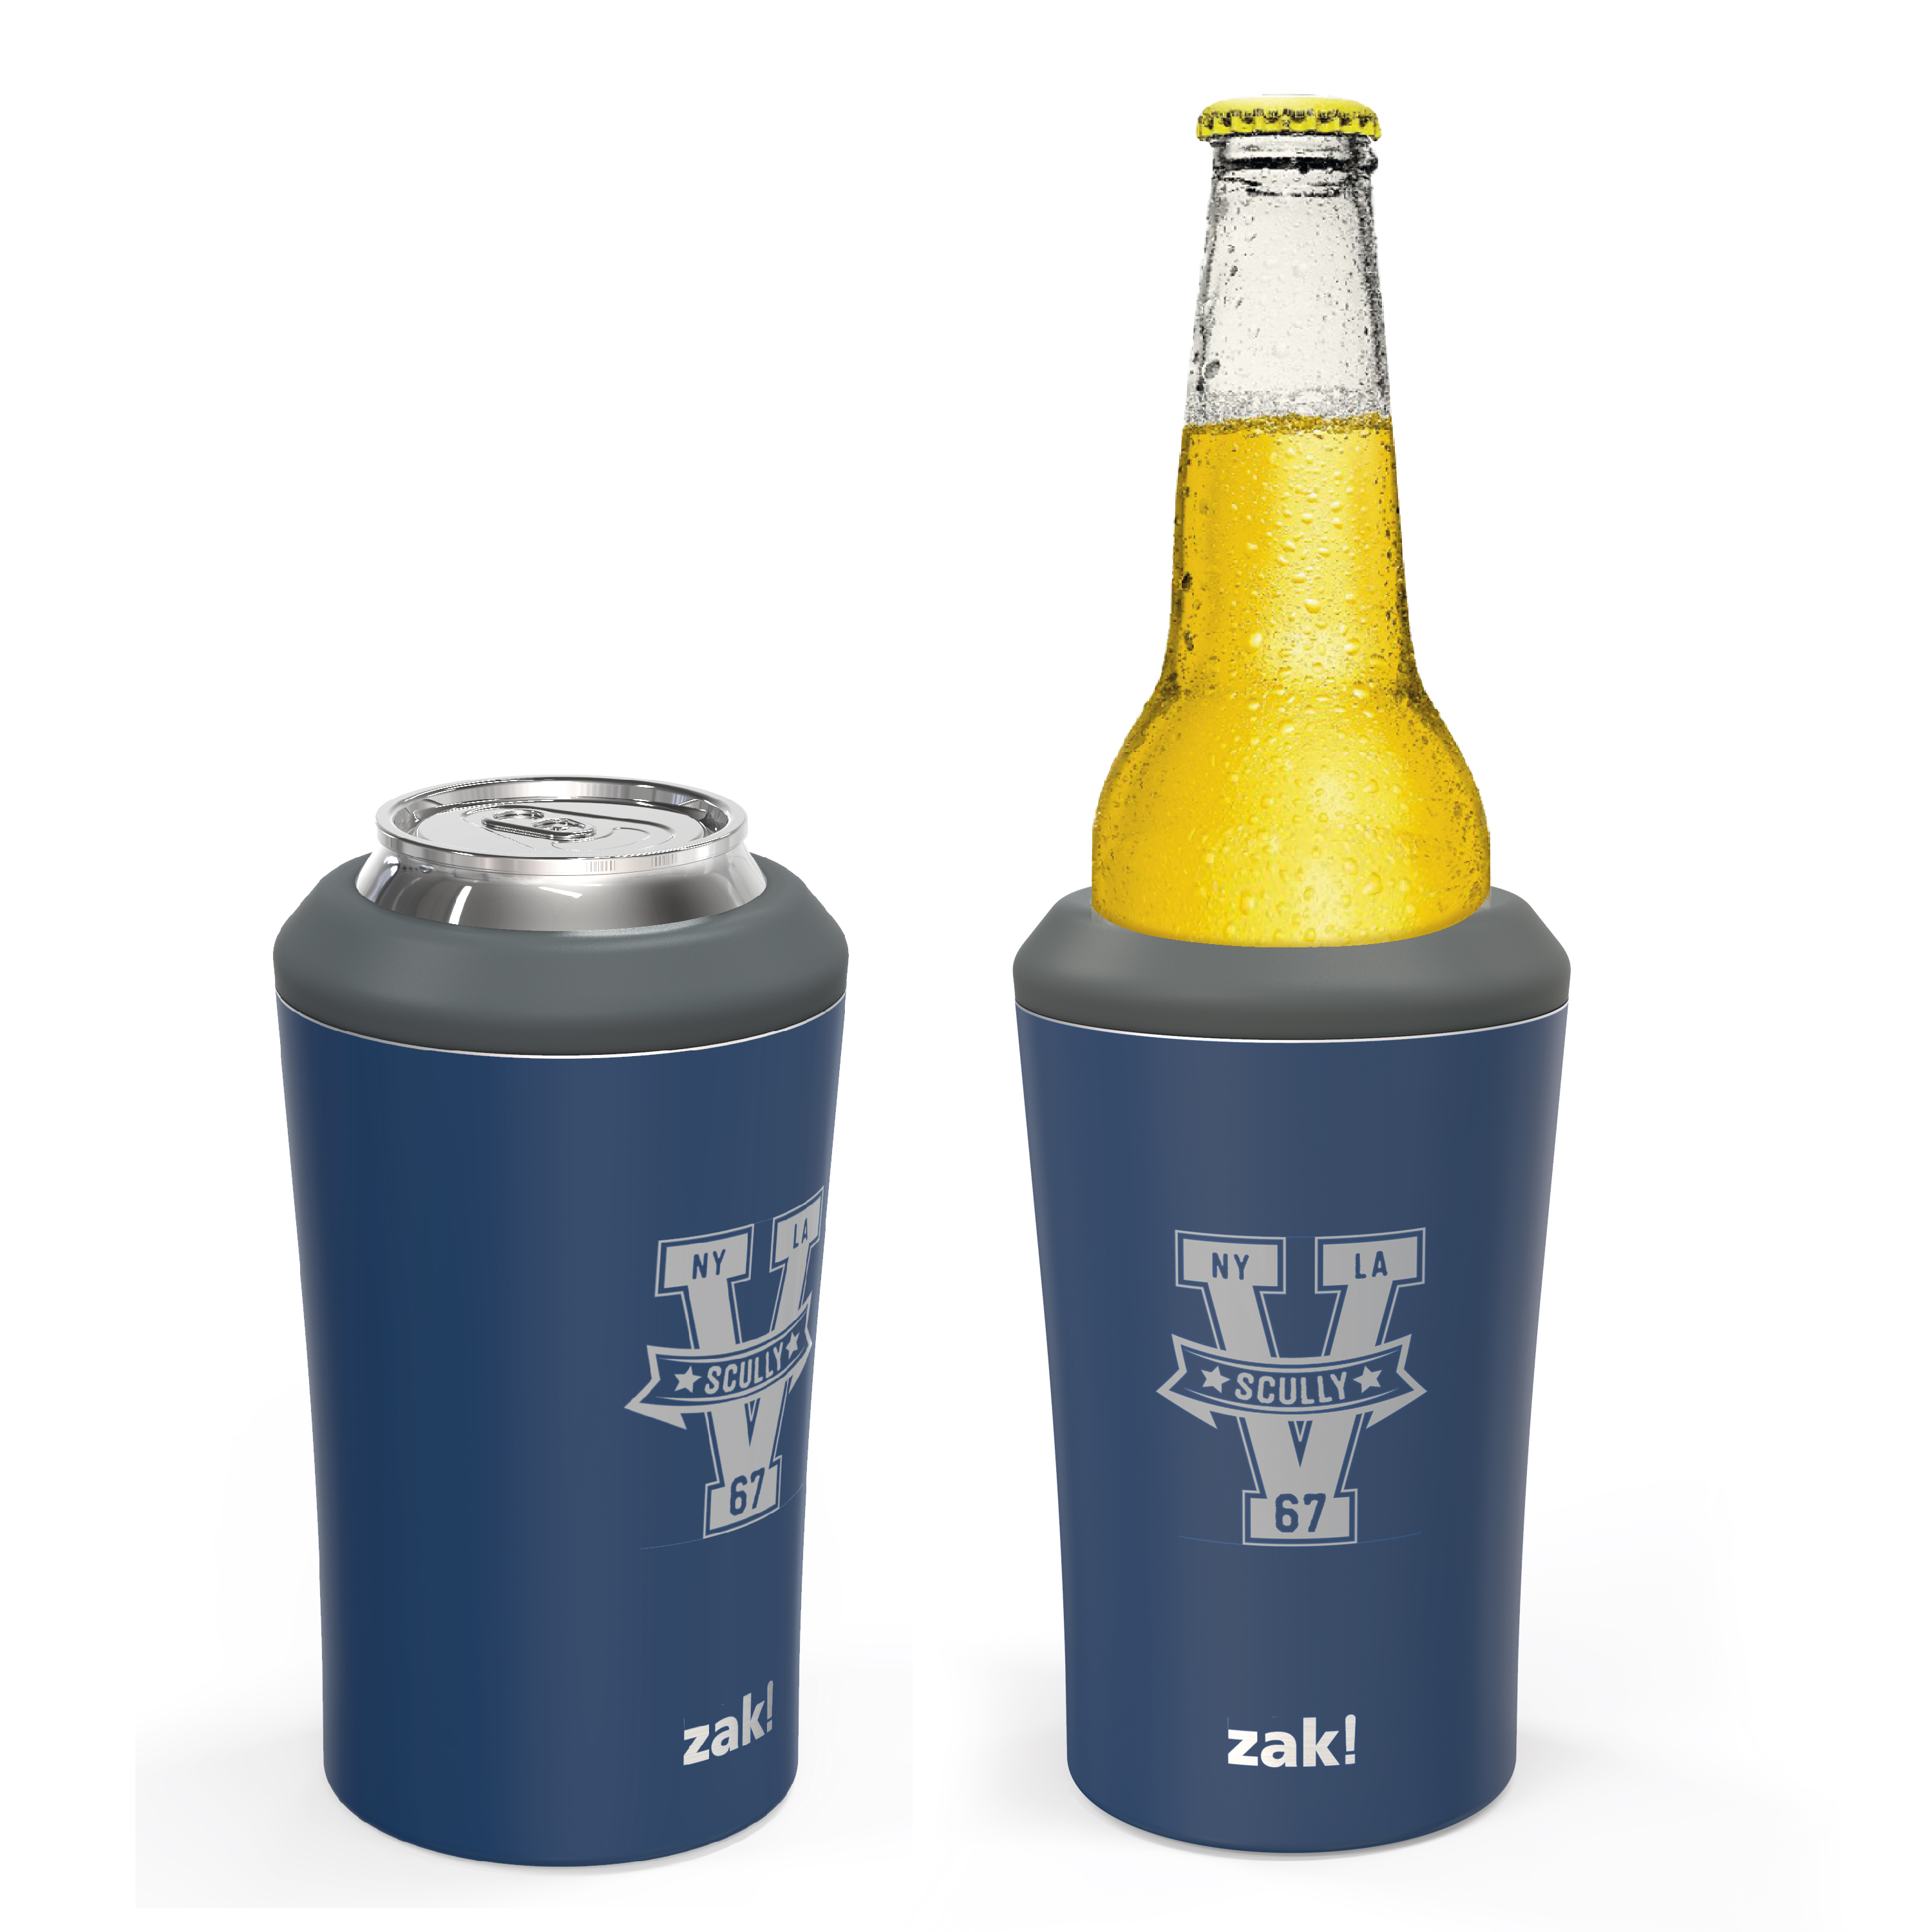 Zak Hydration 12 ounce Double Wall Stainless Steel Can and Bottle Cooler with Vacuum Insulation, Vin Scully slideshow image 3